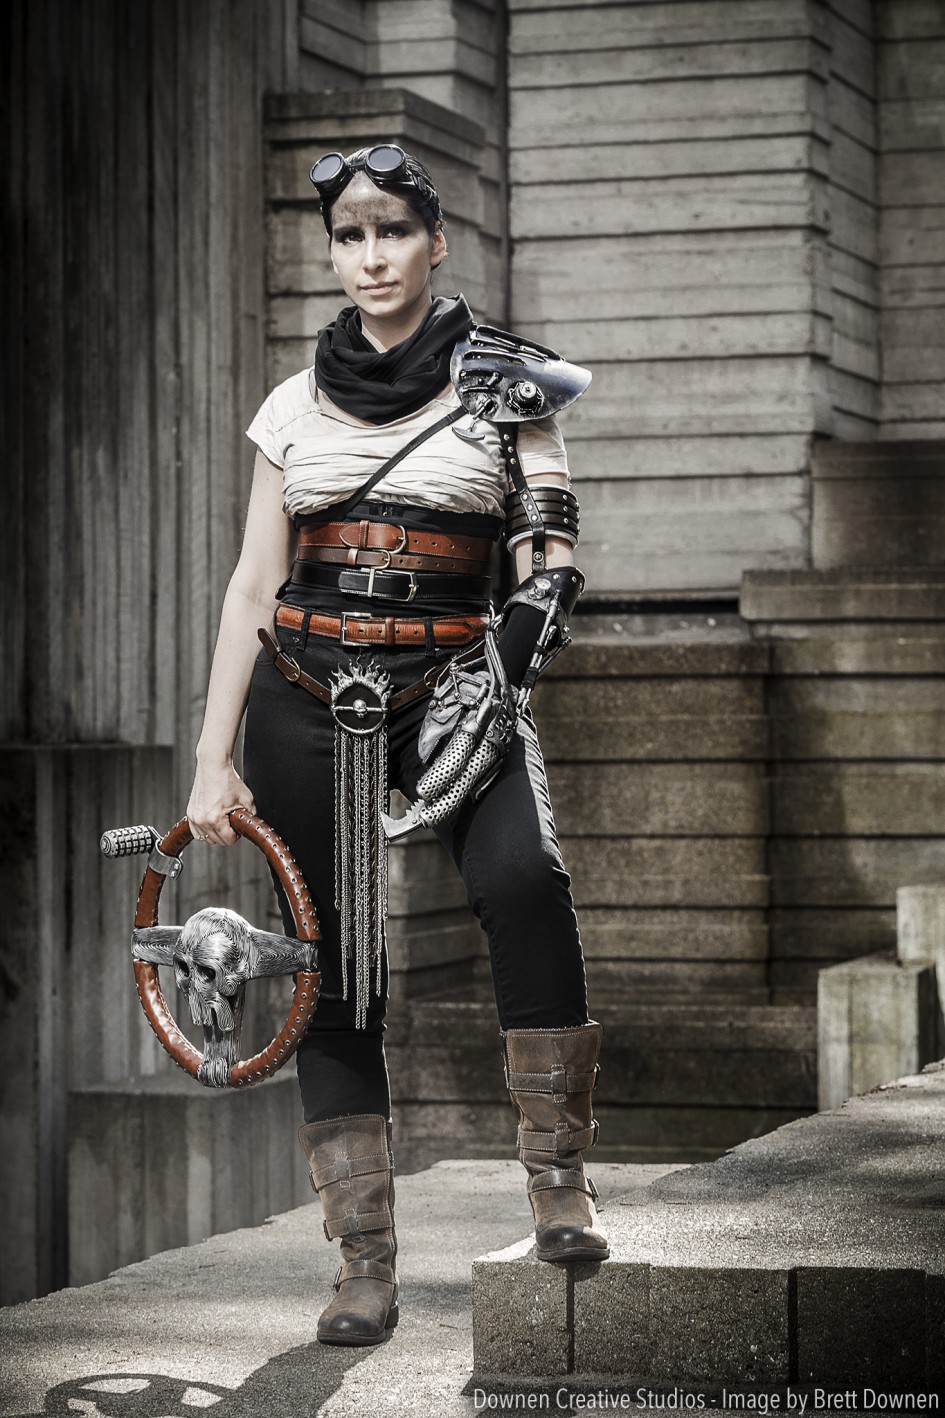 Imperator Furiosa from Mad Max Cosplay Costume